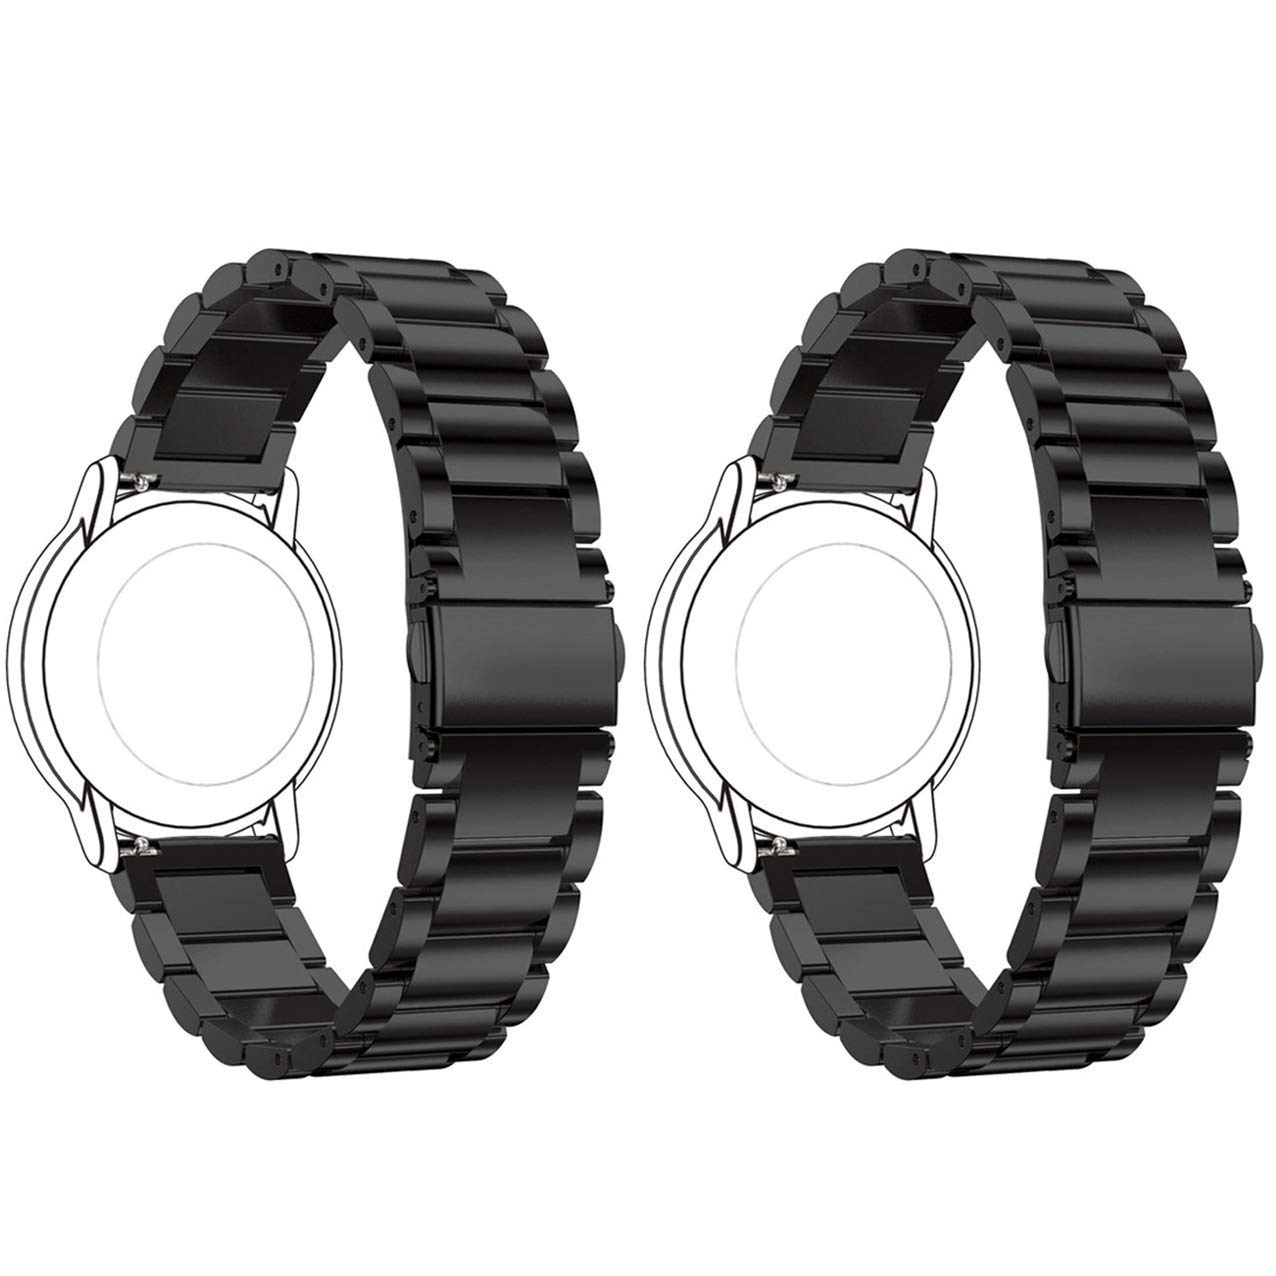 Amazon.com : ECSEM 2pcs for Mens Moto 360 2 42mm Bands ...